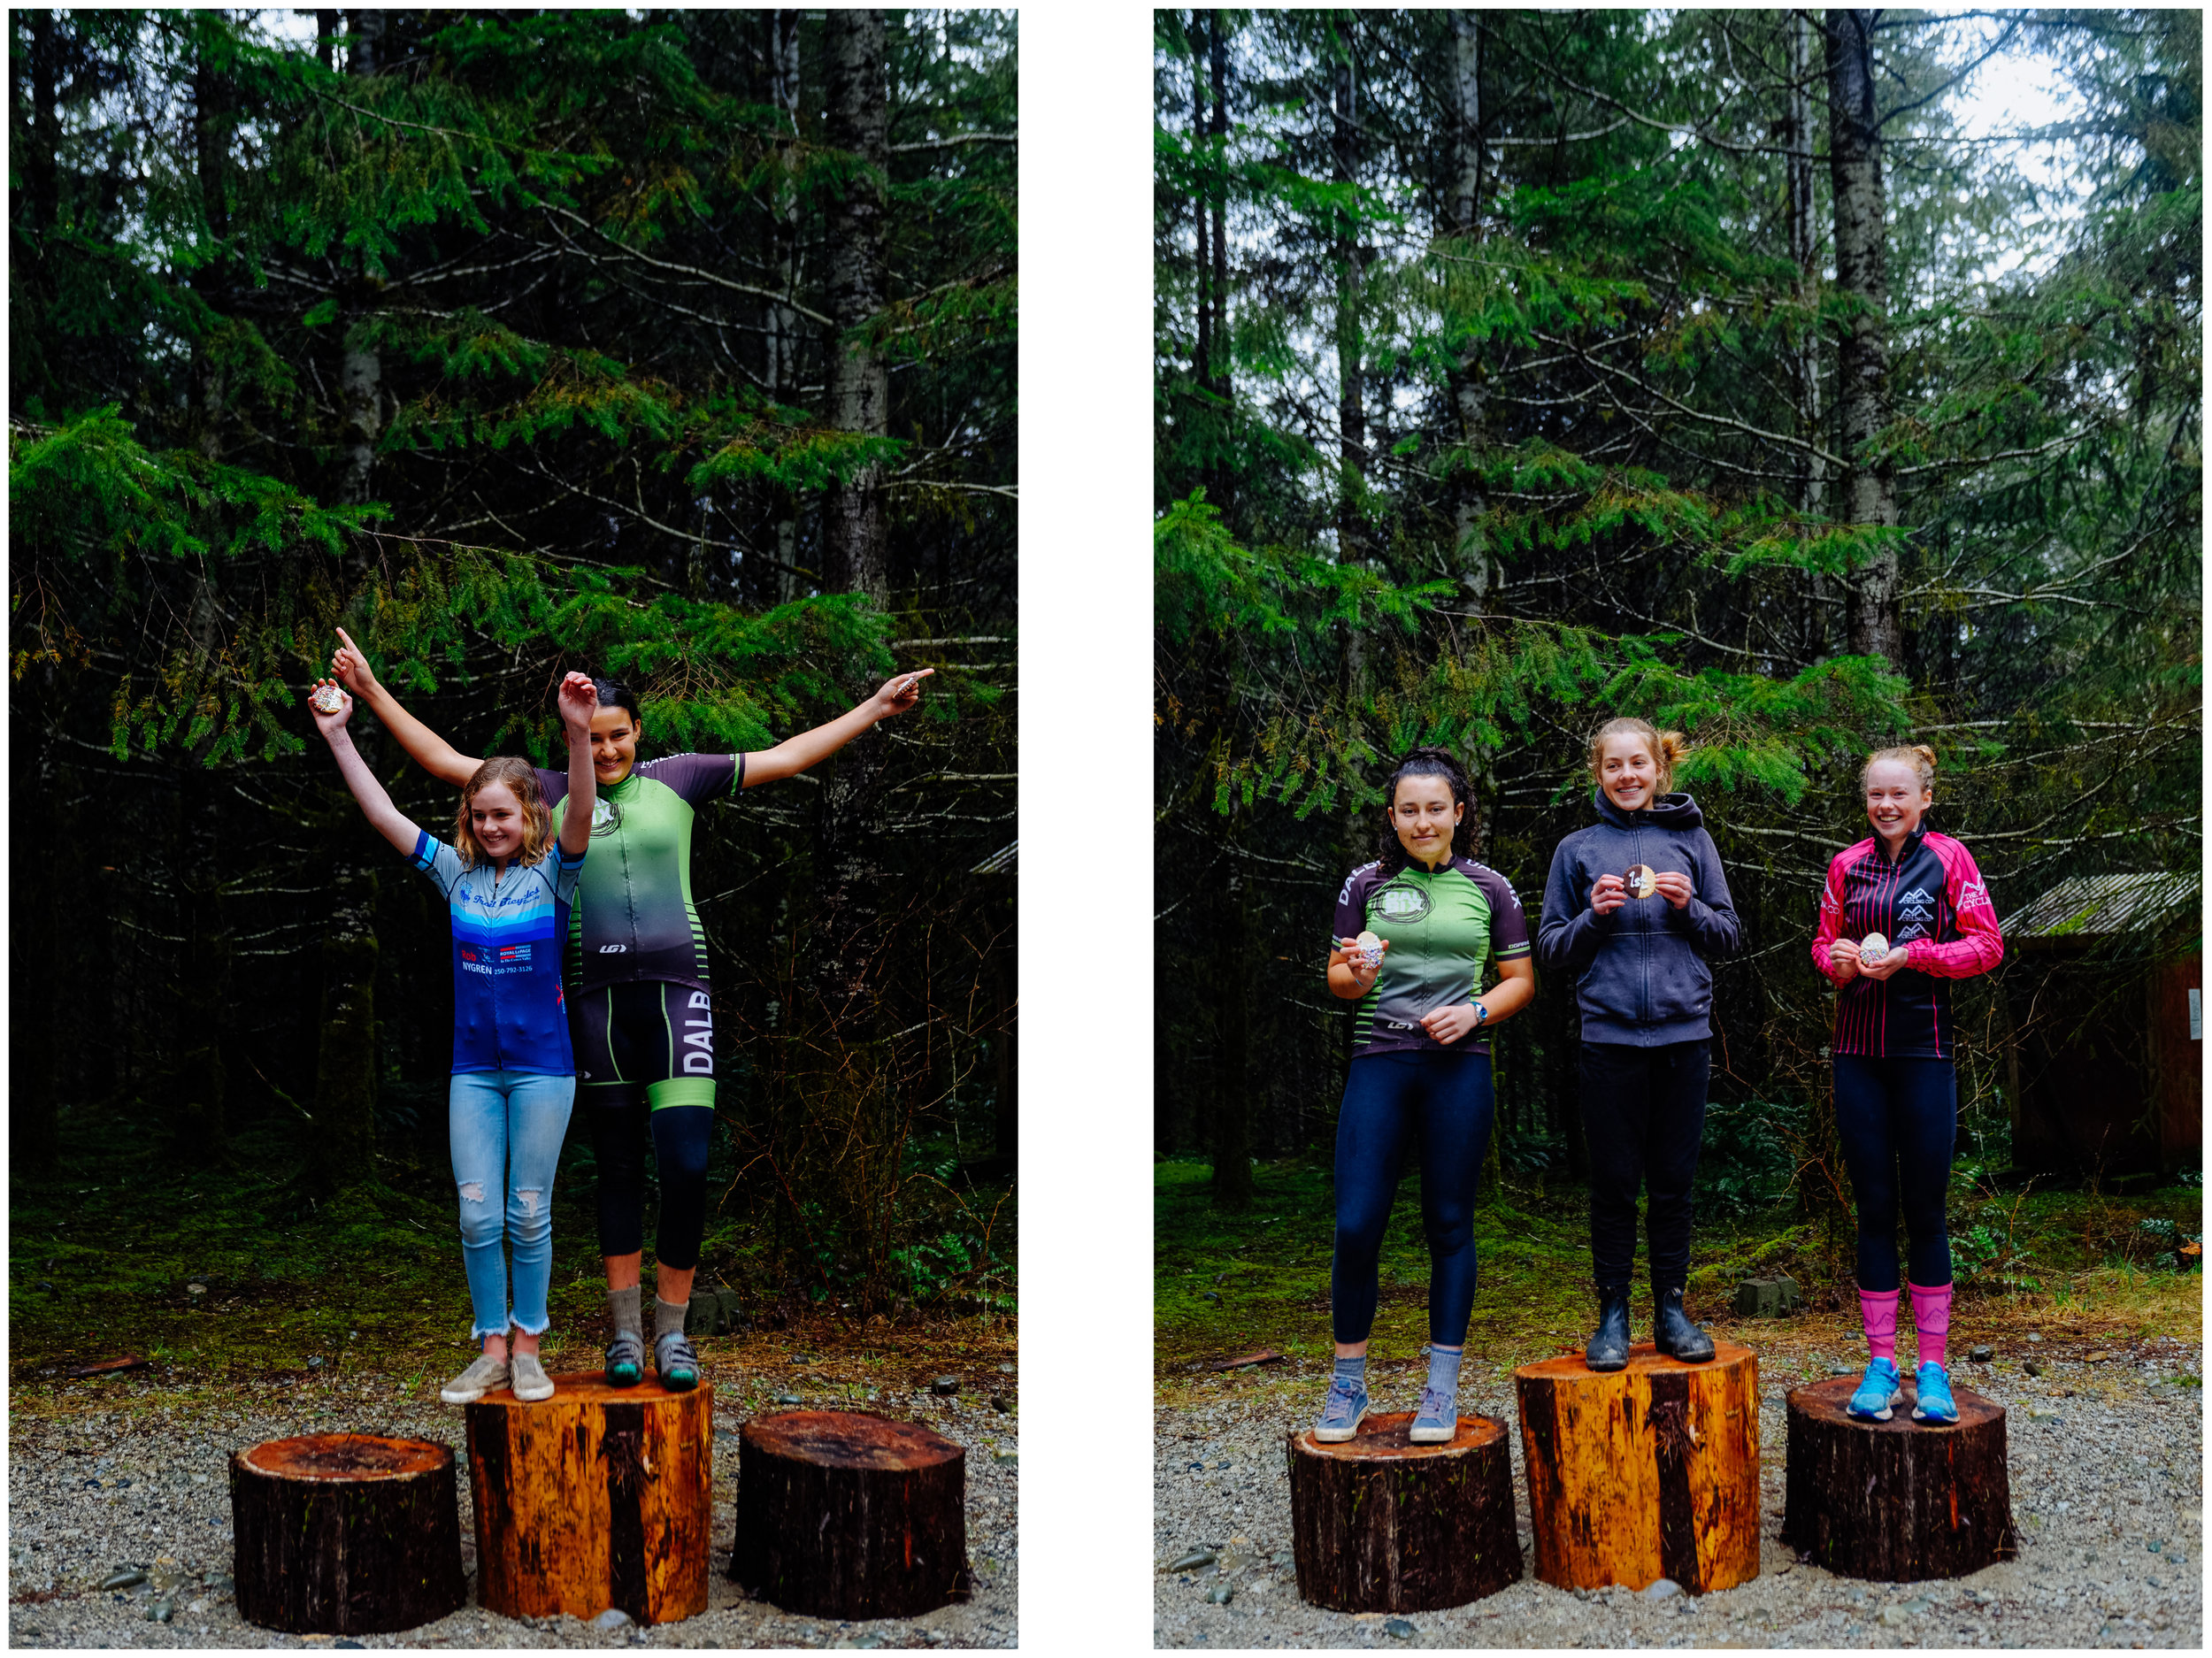 Mathilde got first in the women beginners and Aïsha got second in the intermediate women! A memorable race!